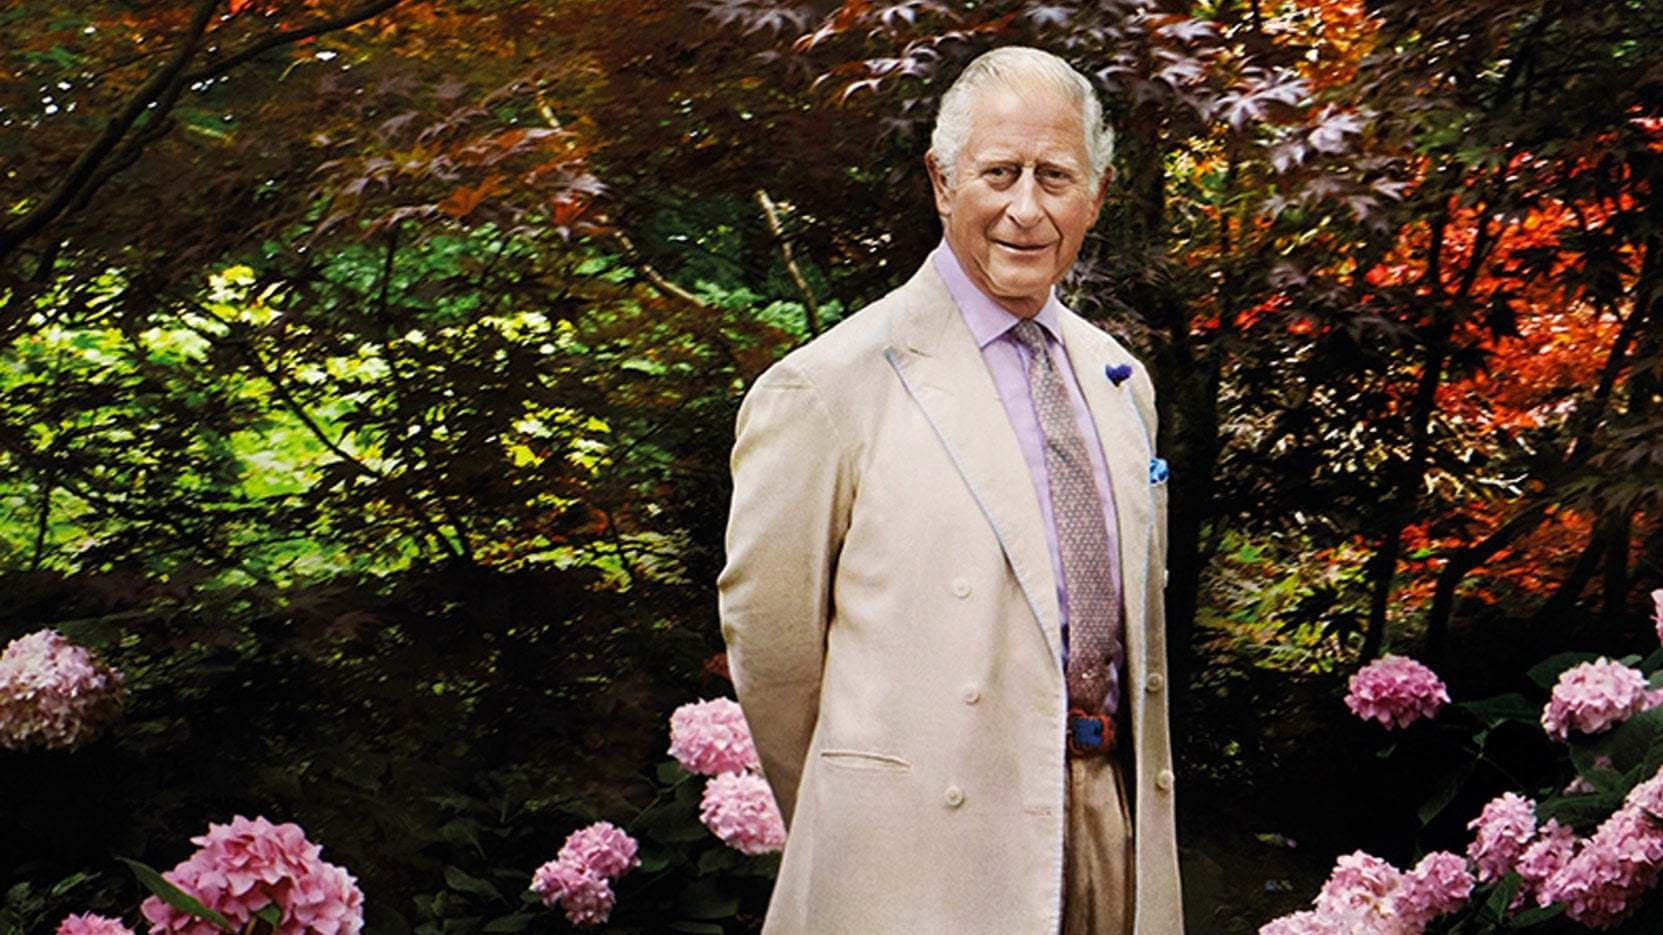 , HRH The Prince Of Wales Speaks To Edward Enninful About His Lifelong Commitment To Sustainable Fashion, TheCircularEconomy.com